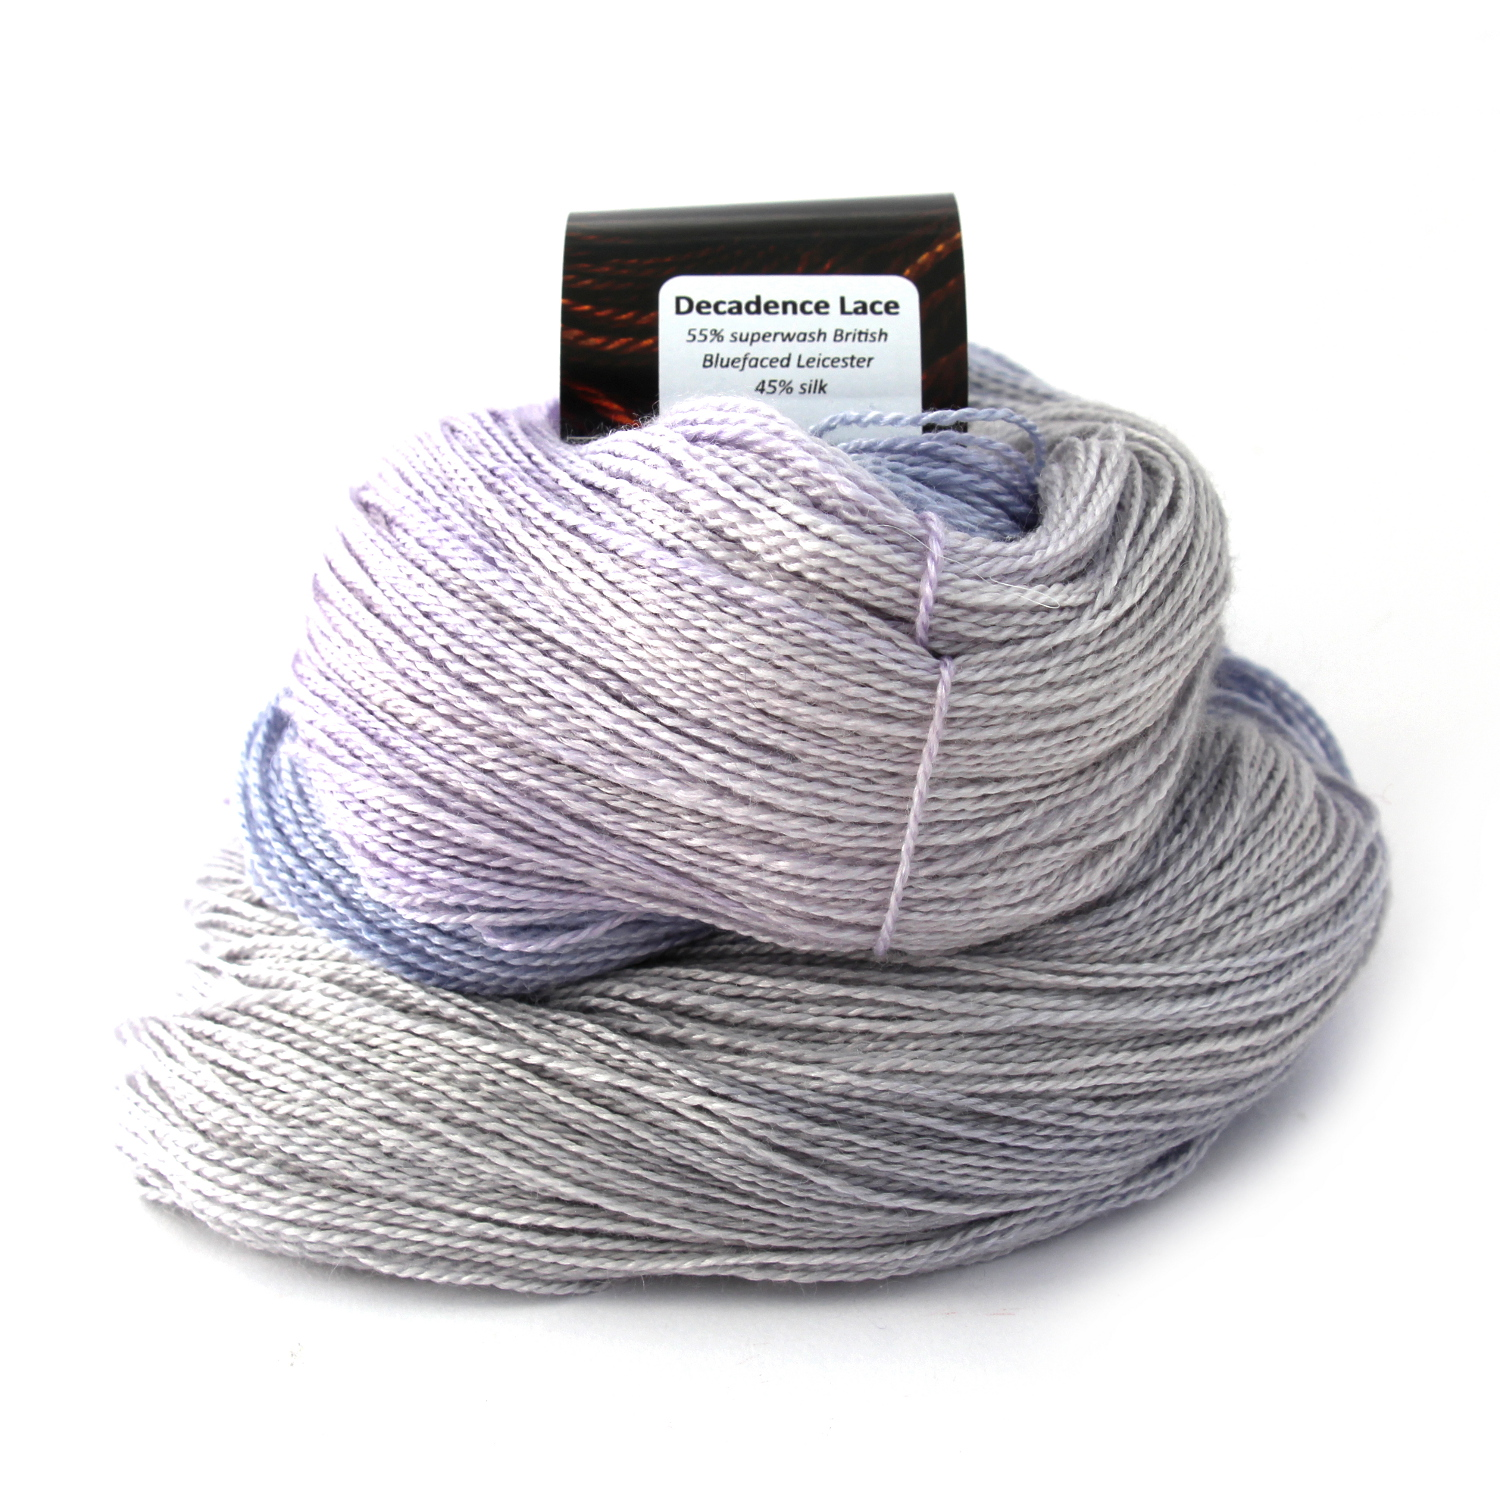 New heavier laceweight yarns